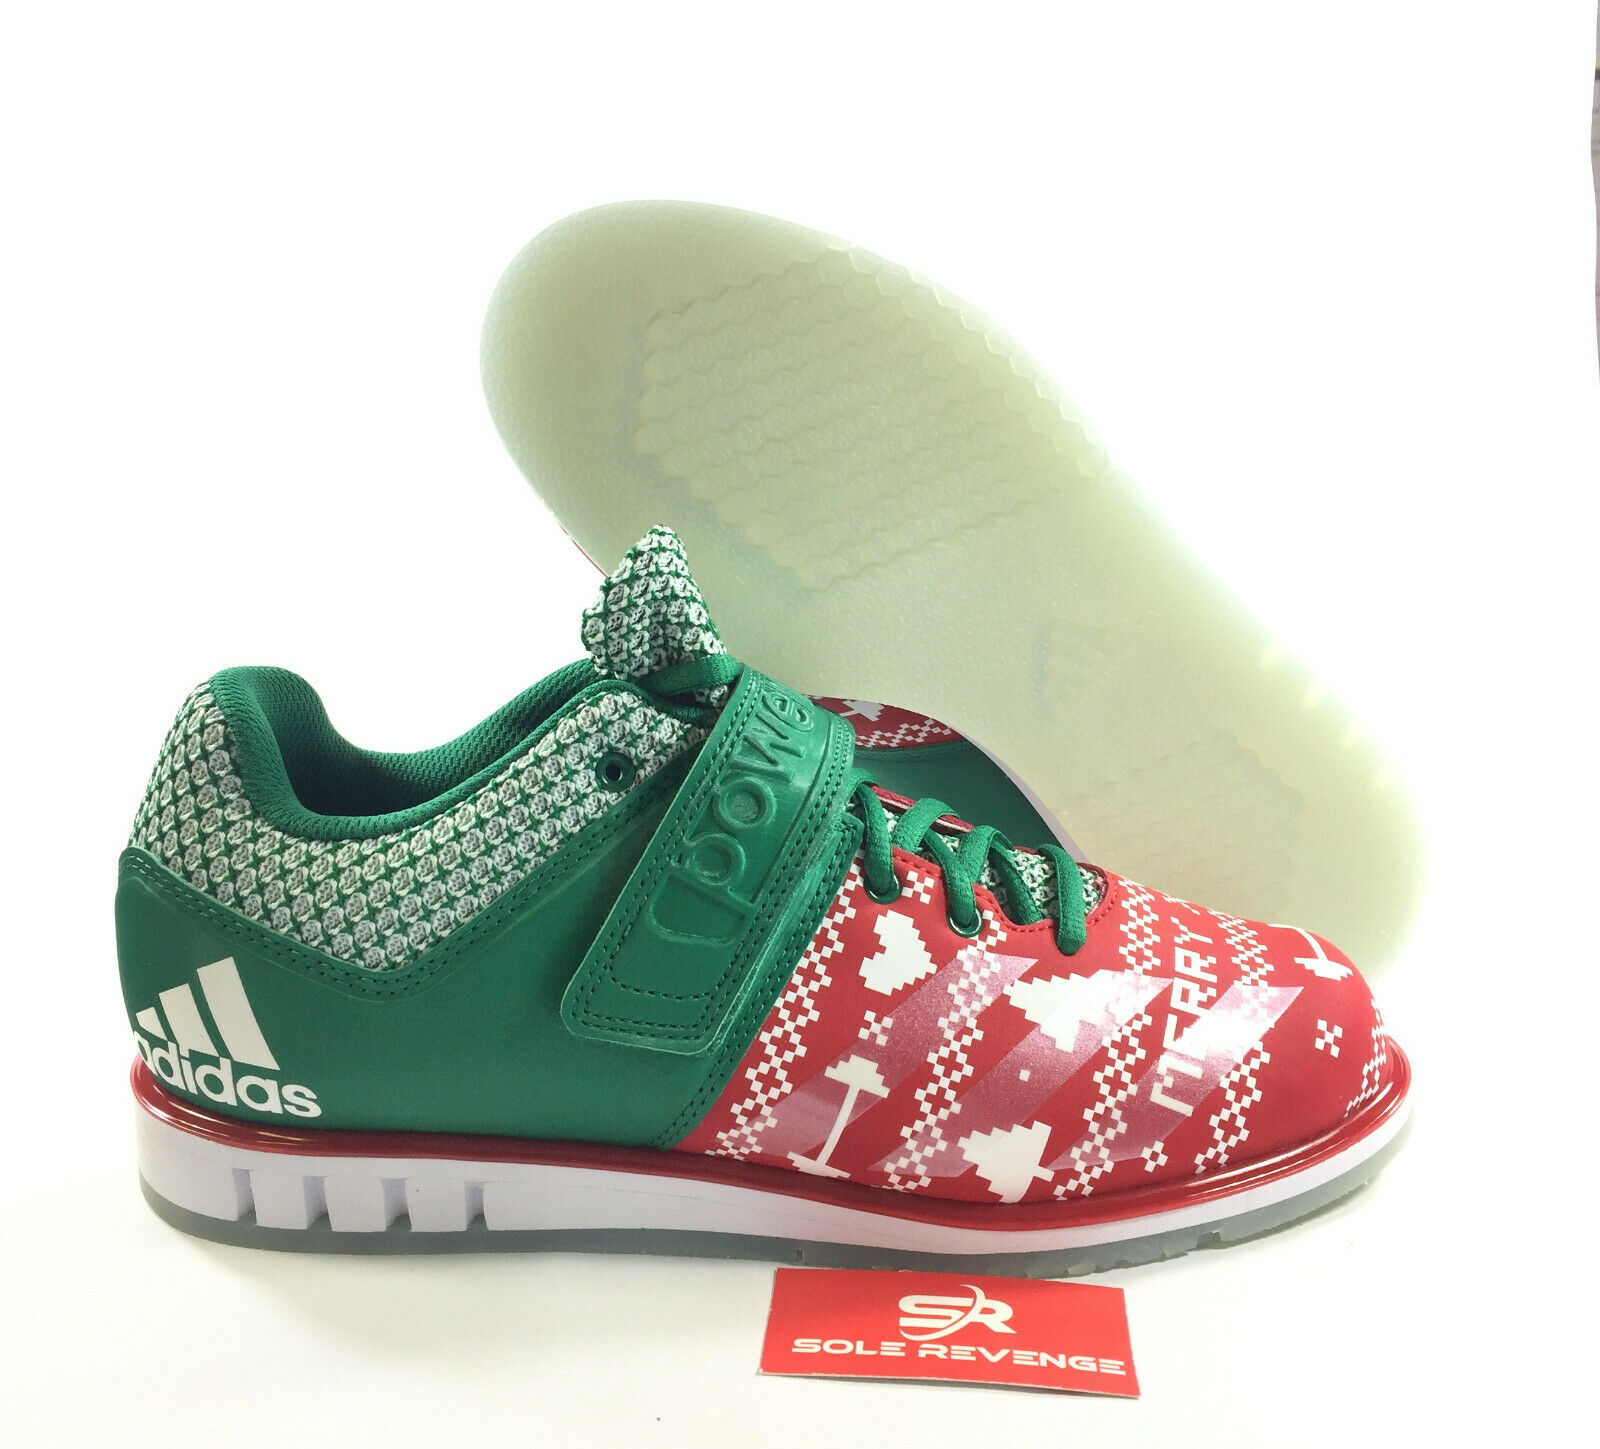 Adidas POWERLIFT 3.1 CG6455 Christmas shoes Scarlet Cloud White Bold Green a1